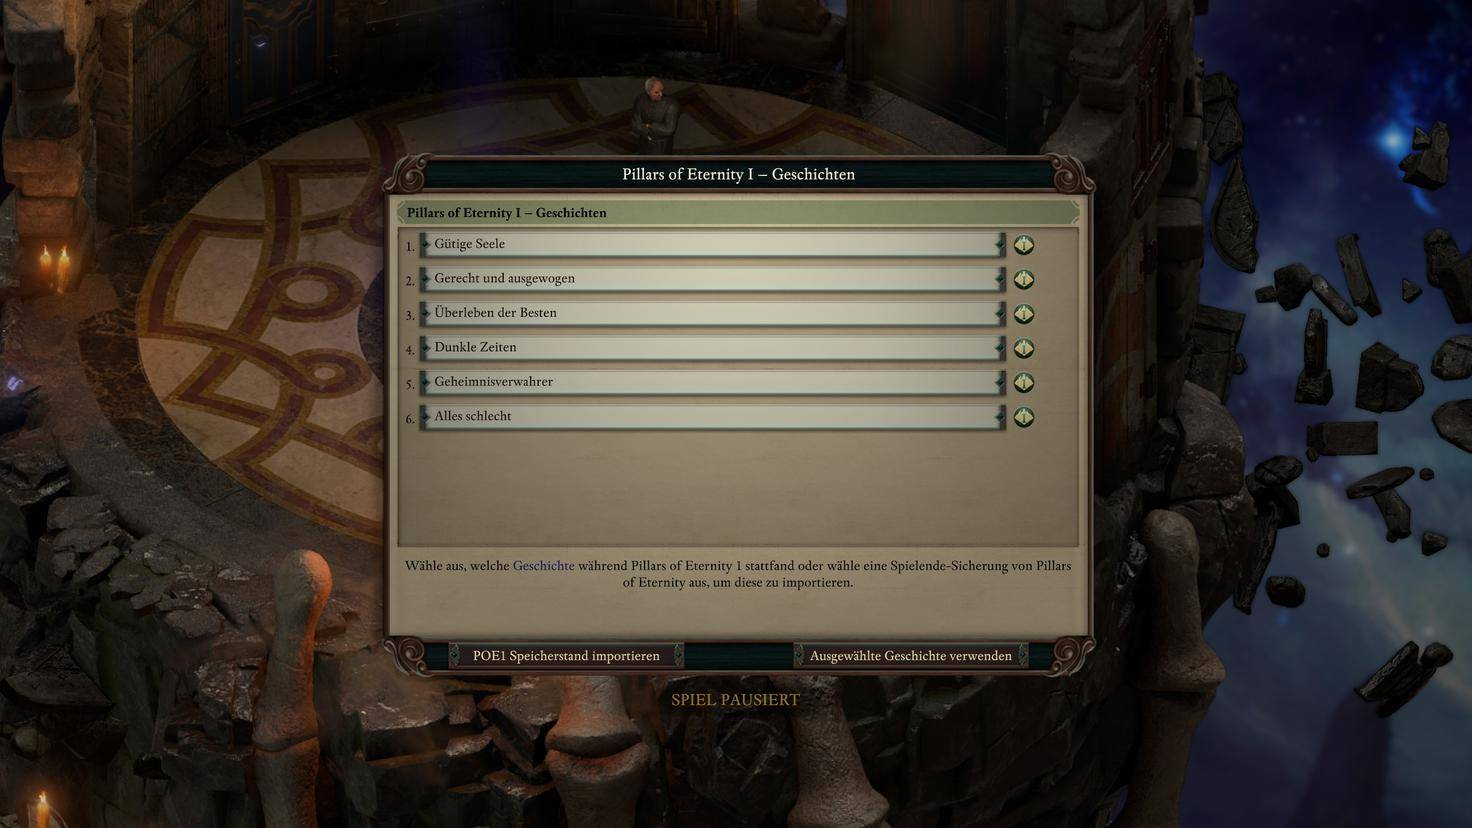 Pillars-of-Eternity-2-Deadfire-Geschichte-TURN-ON